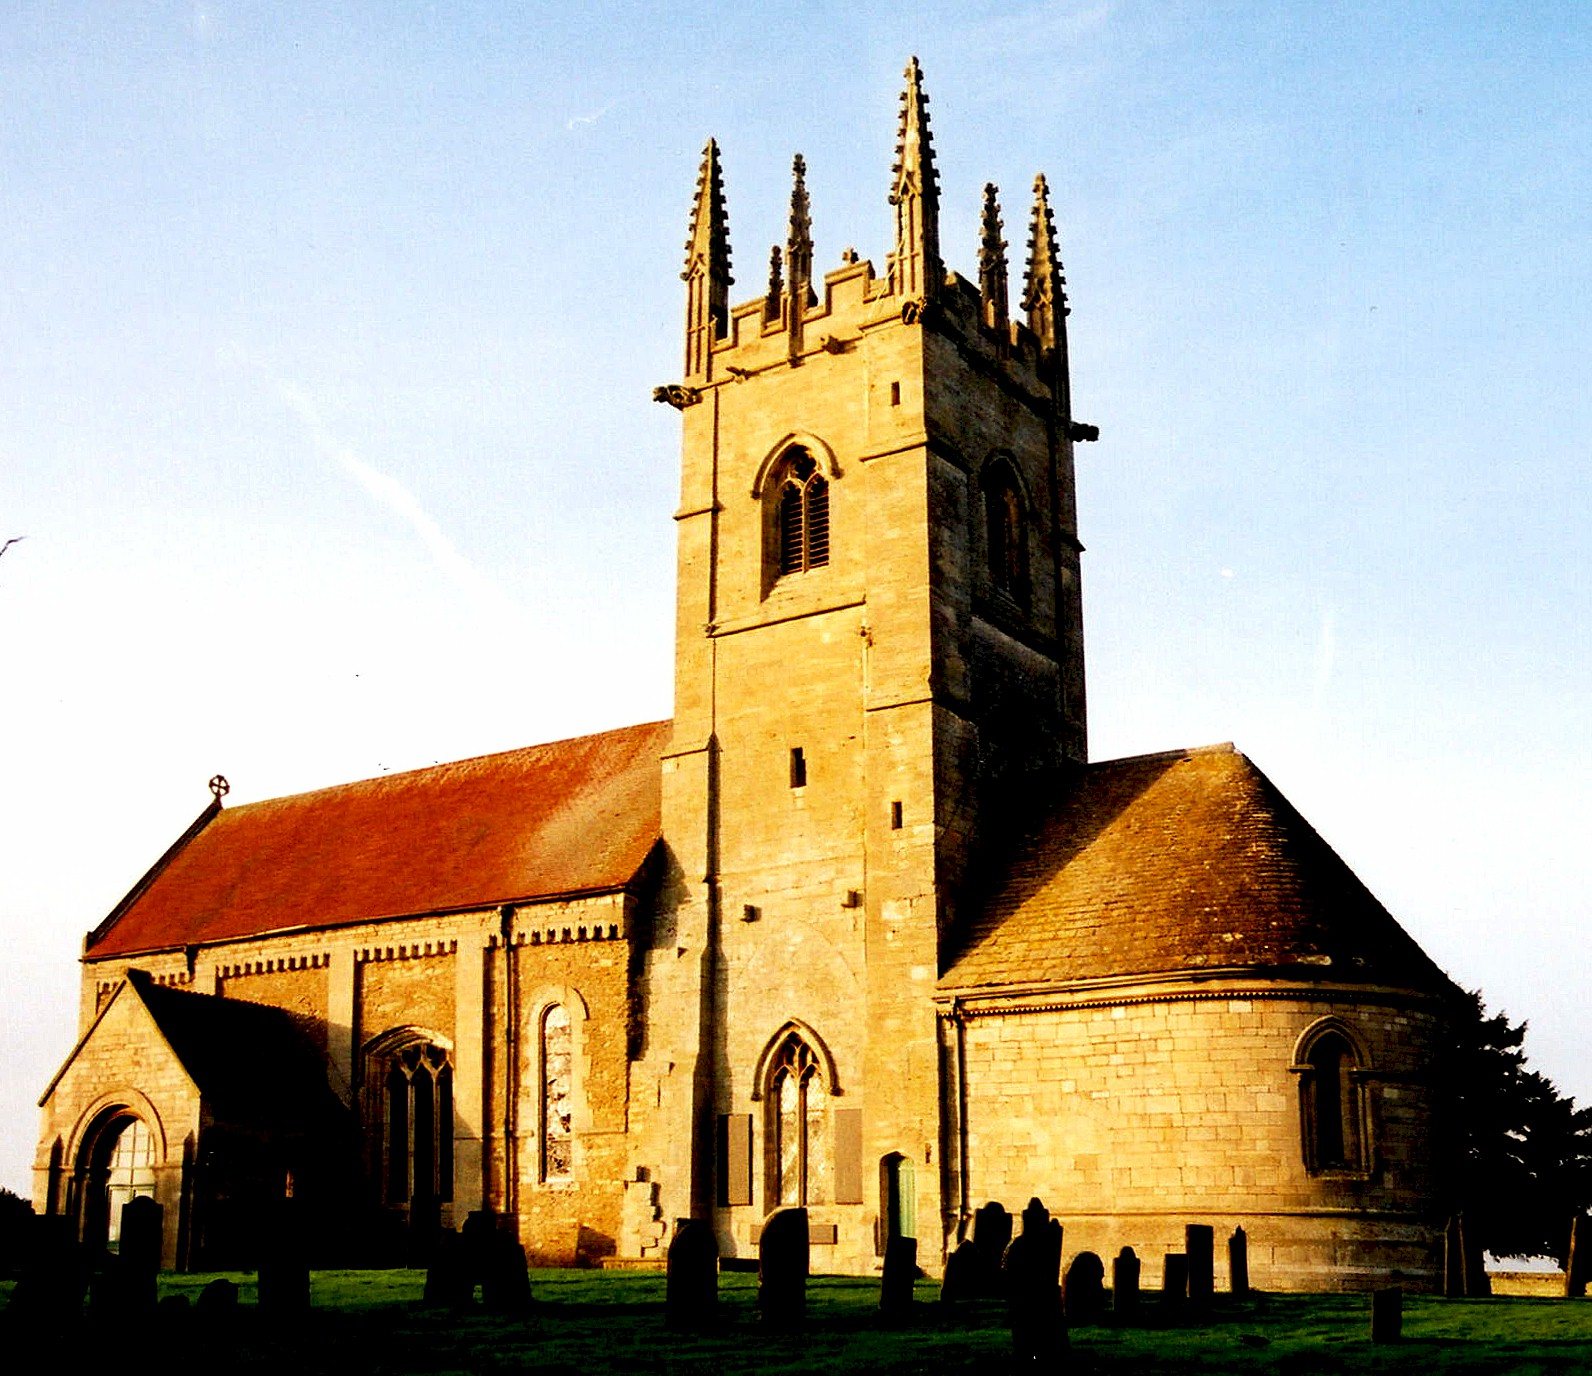 anglican pentecostal: a wedge into cessationism: the anglican